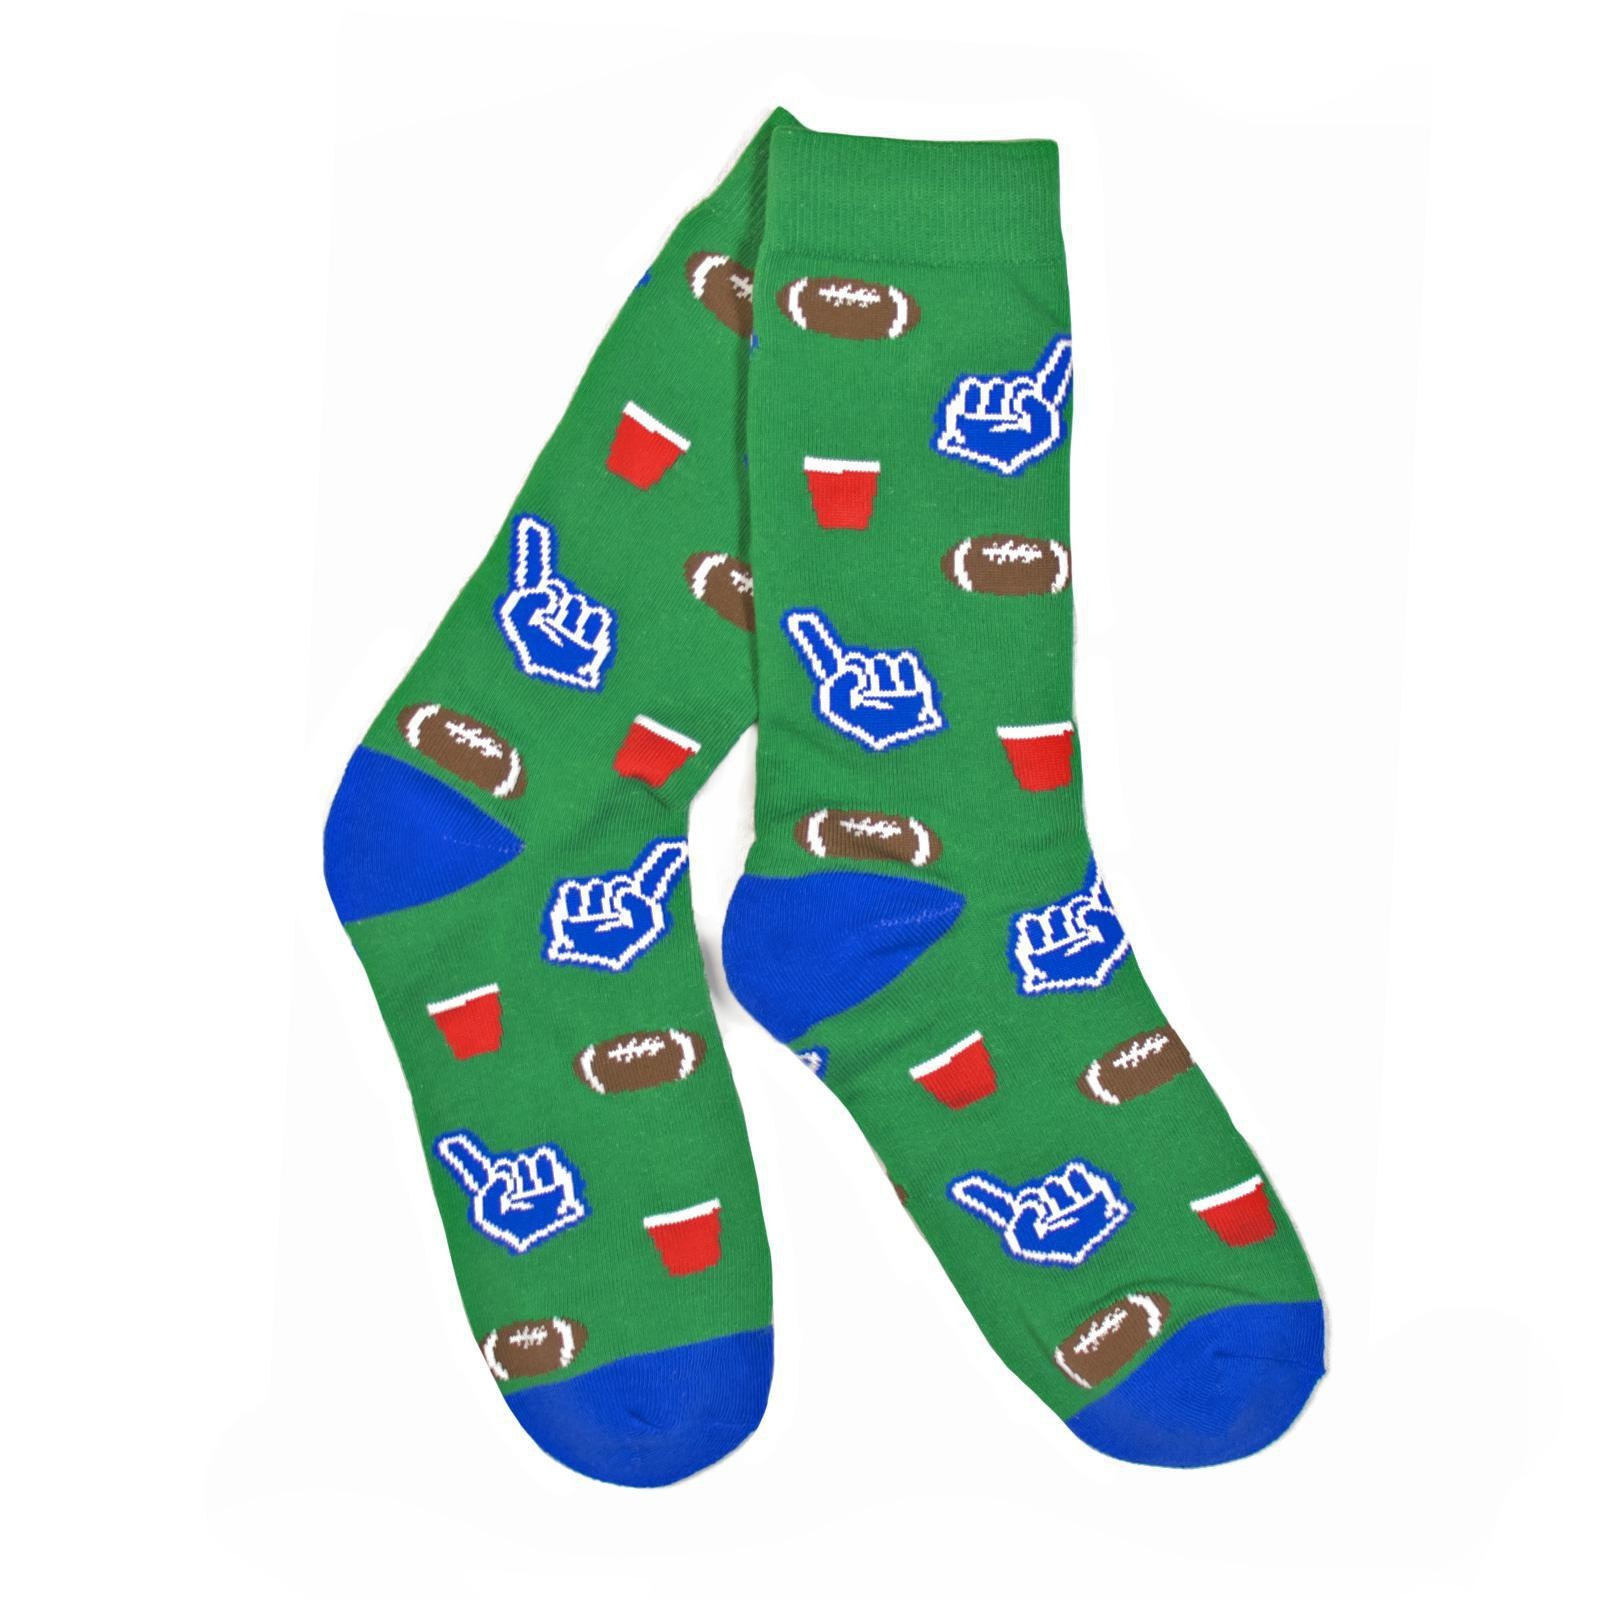 Tailgating Socks